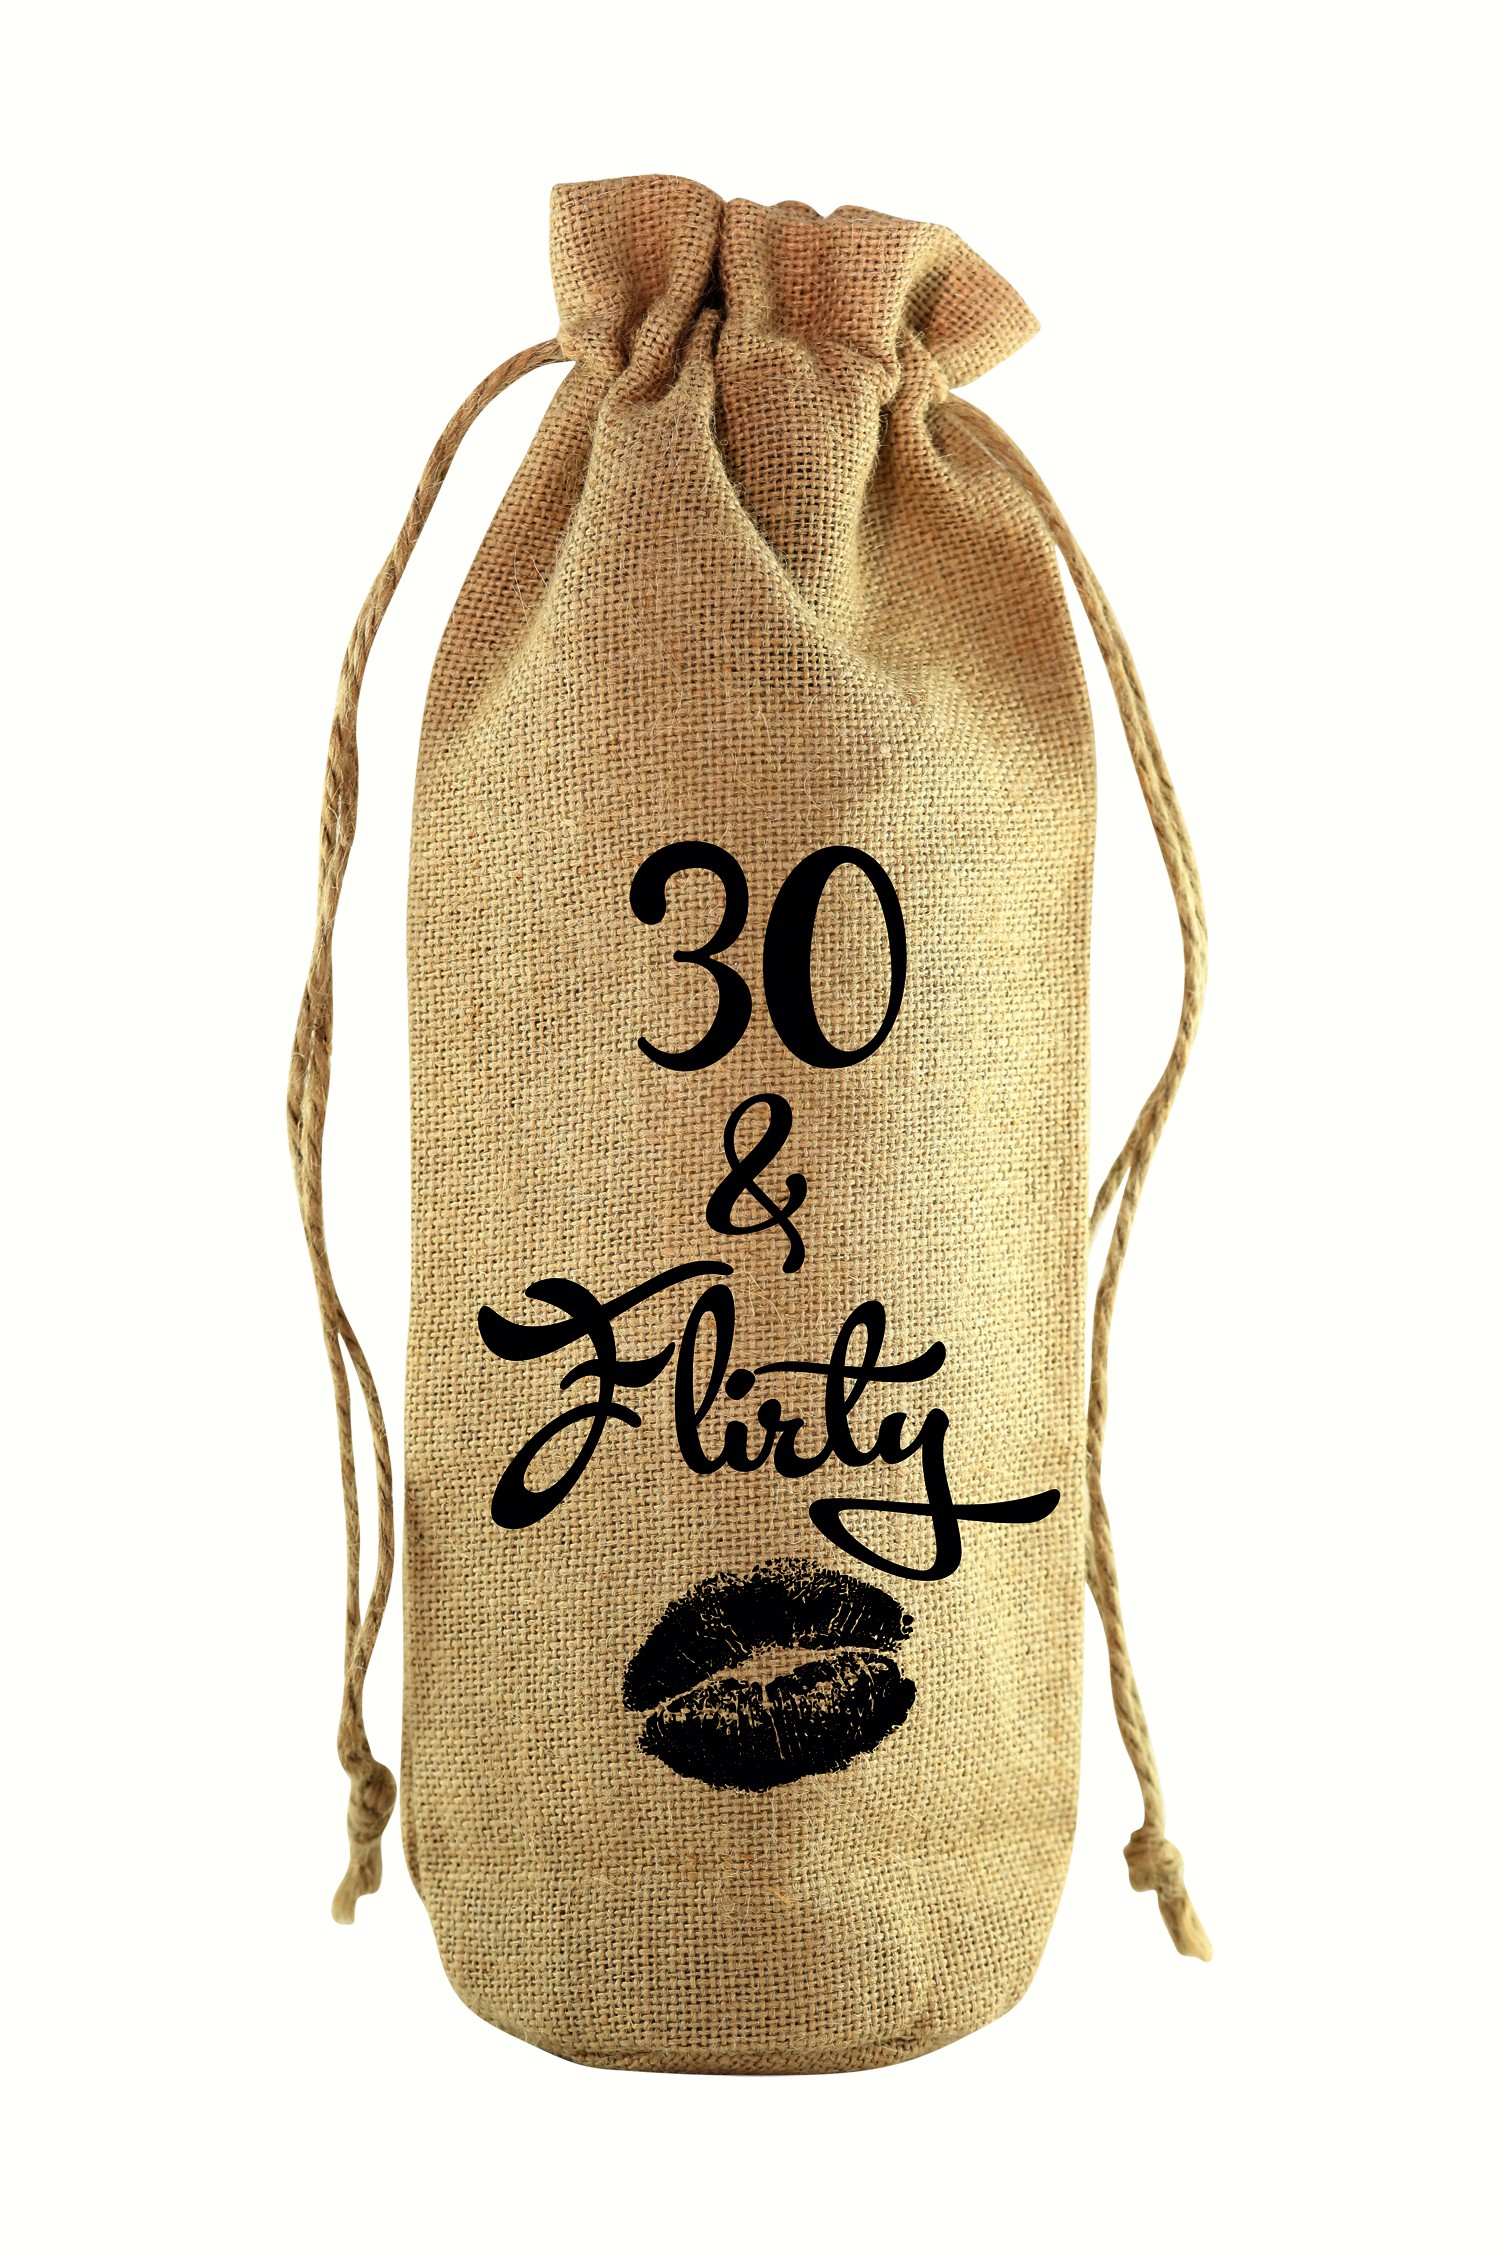 30 & Flirty Jute Wine Bottle Sack